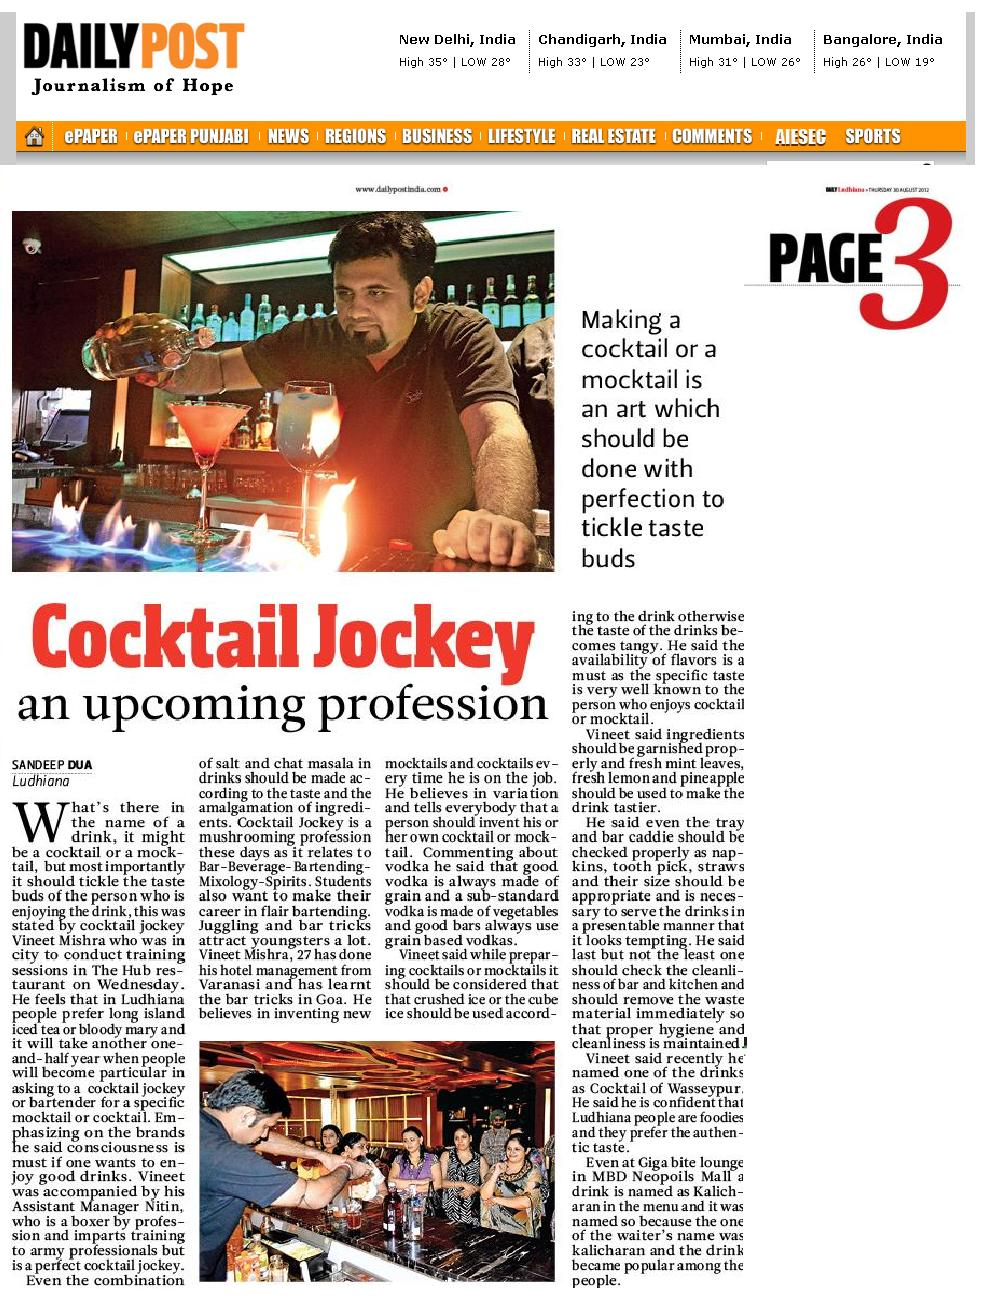 vineet mishra bartending india cocktailjockey cocktail jockey